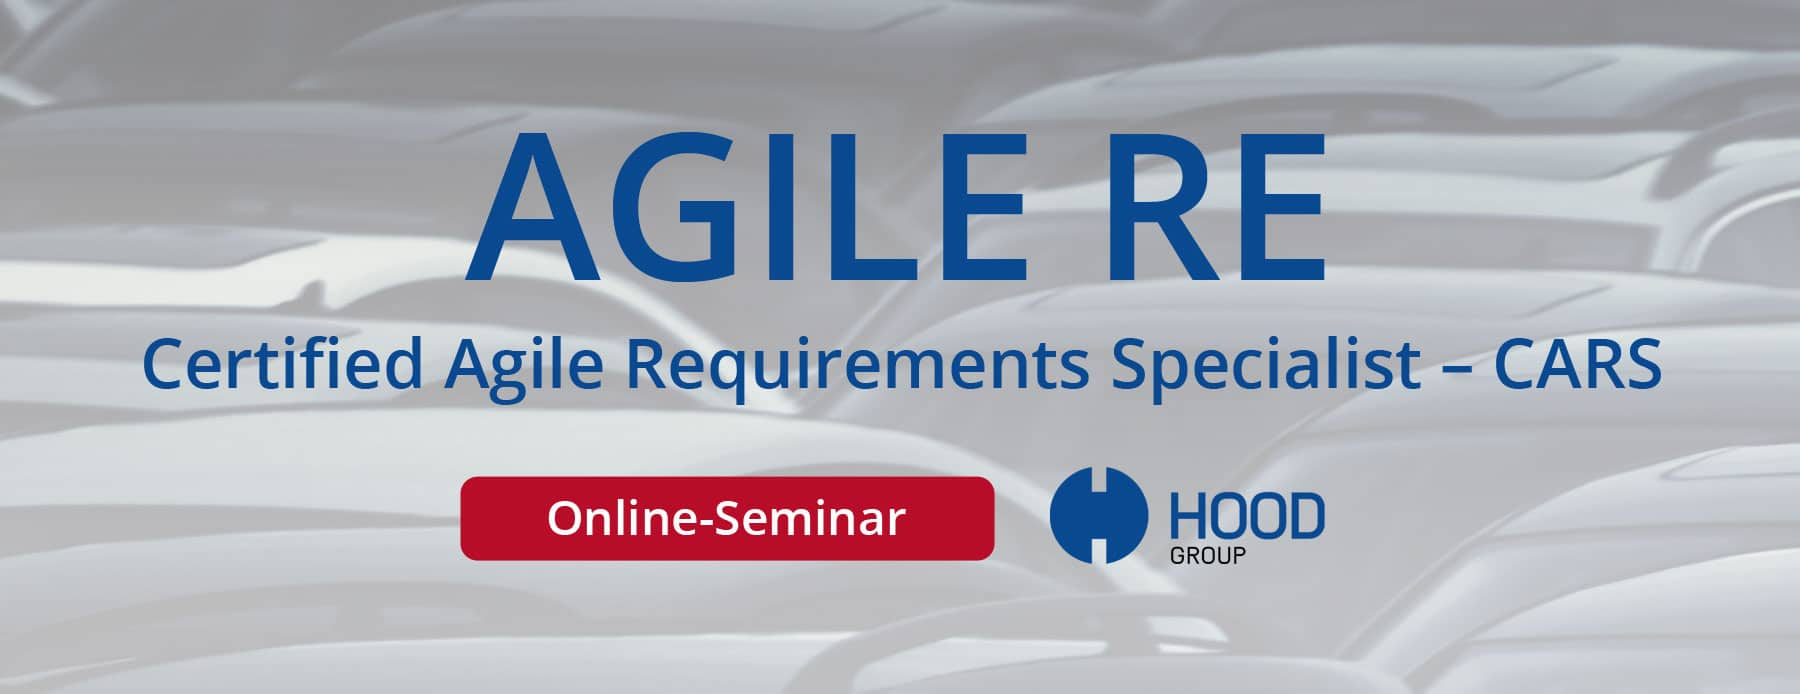 Online Seminar: Agile RE - Certified Agile Requirements Specialist